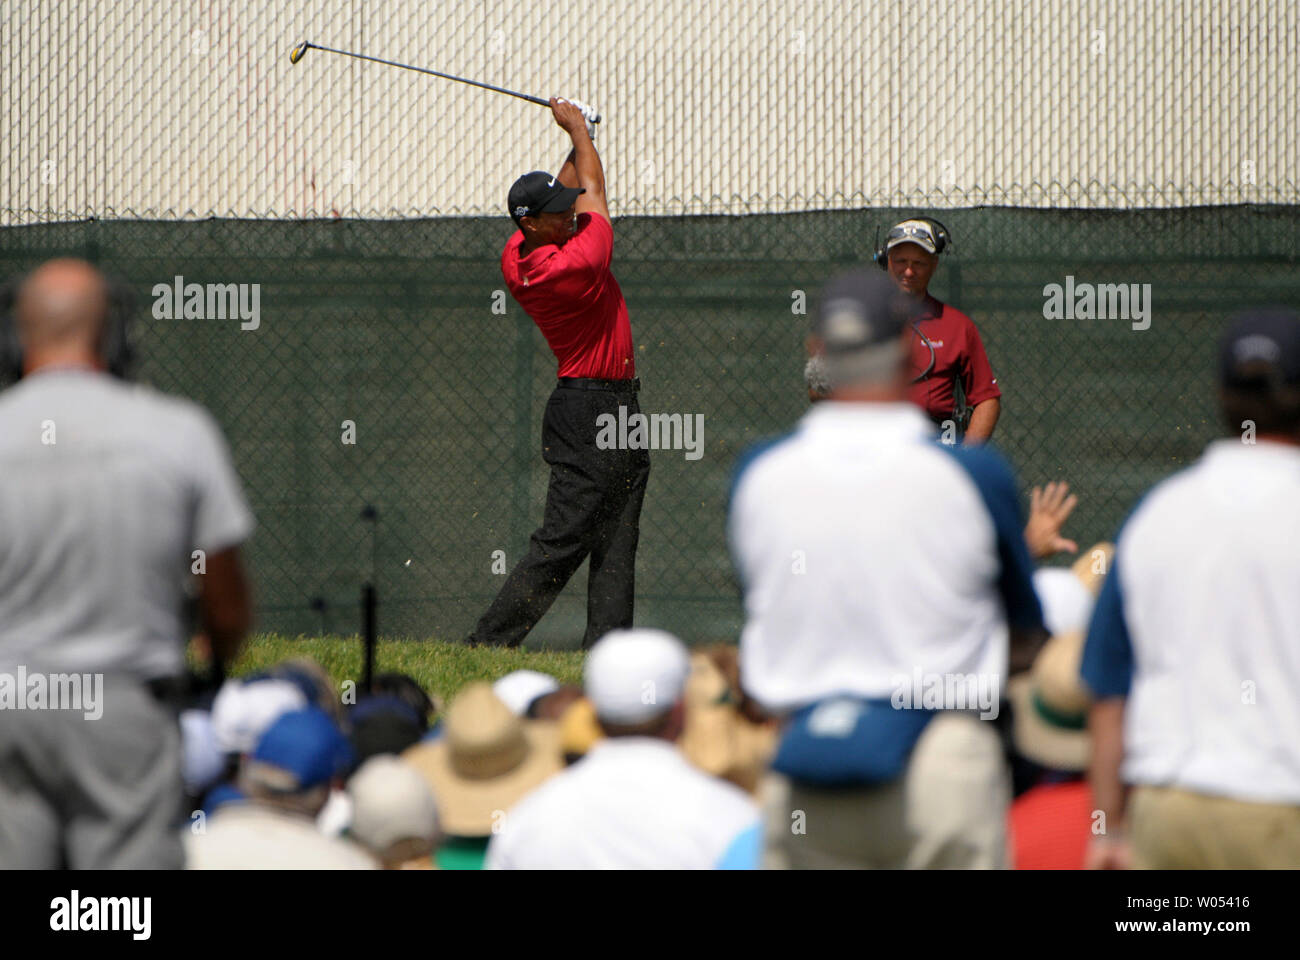 Tiger Woods hits off the 10th tee box during the last day of regular play of the US Open at Torrey Pines Golf Course in San Diego on June 15, 2008. Woods tied for first with Rocco Mediate and a playoff round will be held tomorrow. (UPI Photo/Earl S. Cryer) - Stock Image